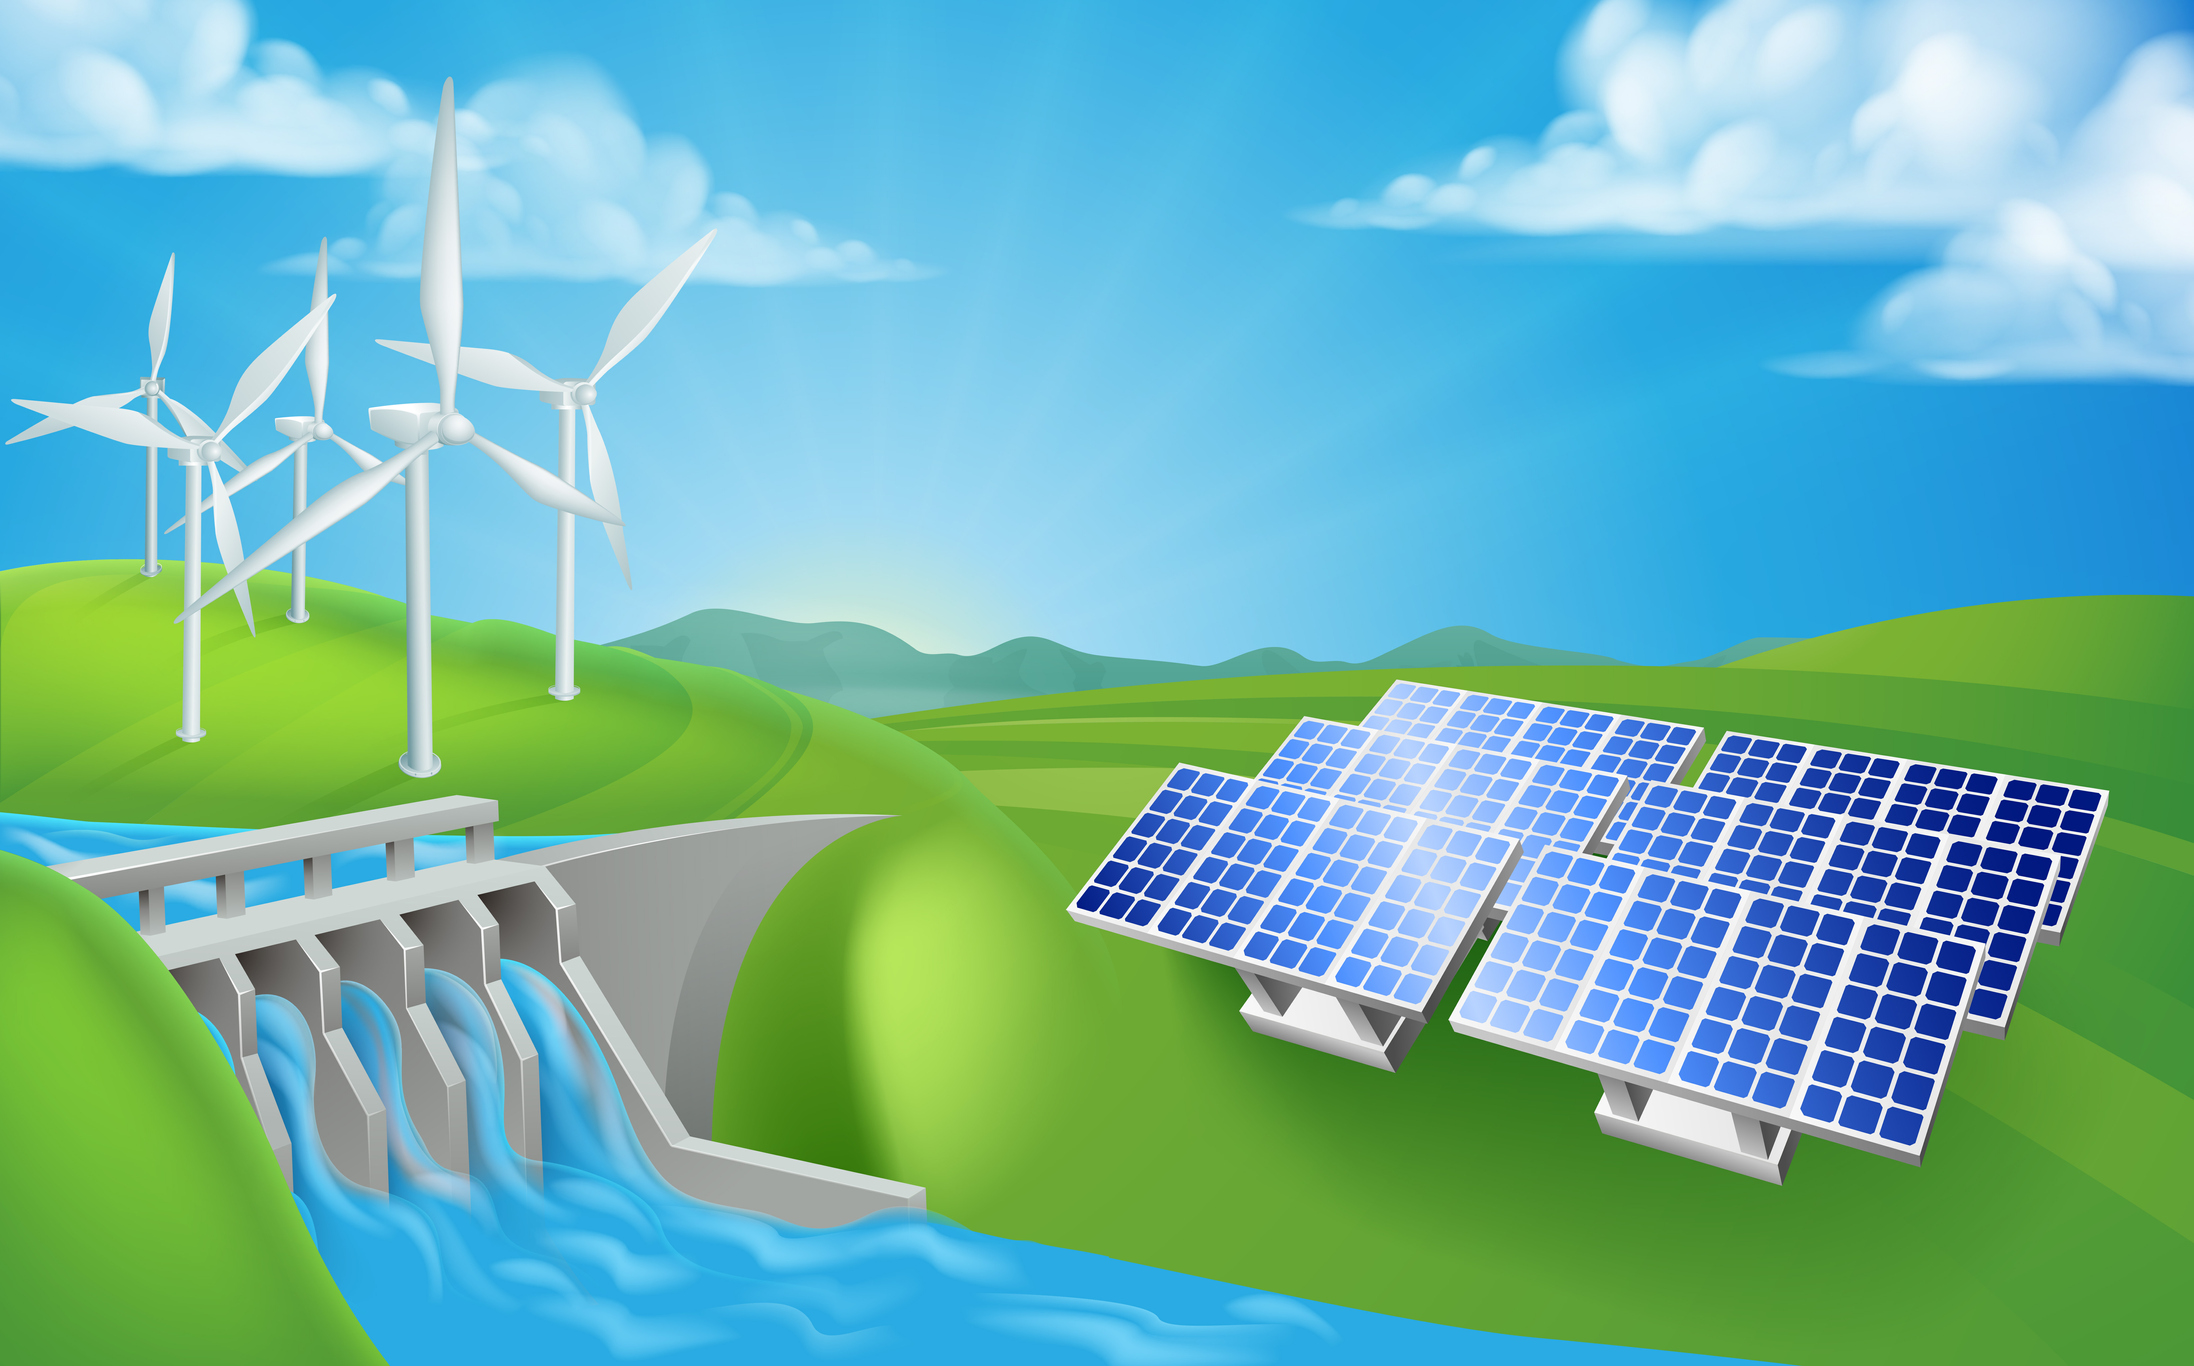 Solar panels and wind turbines on the downstream face of a hydropower hybrid plant dam.